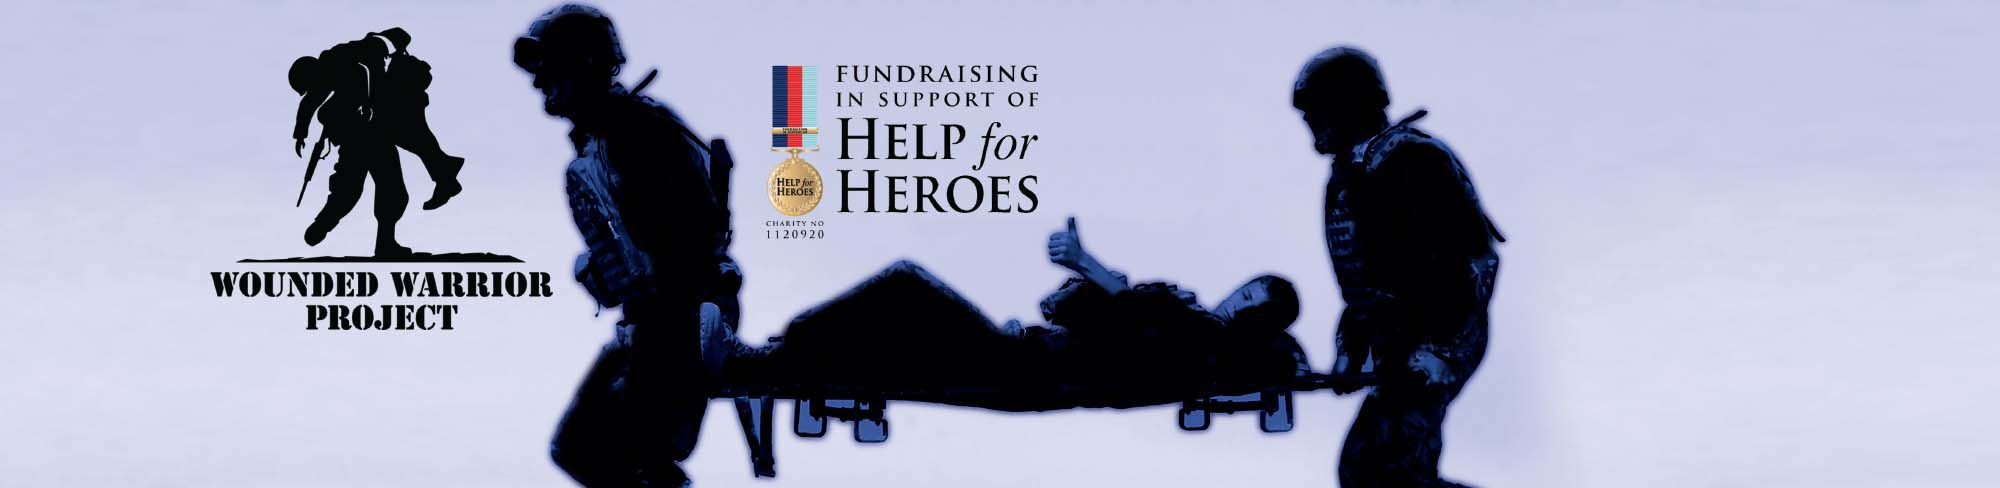 Wounded_Warrior_2000x488.jpg